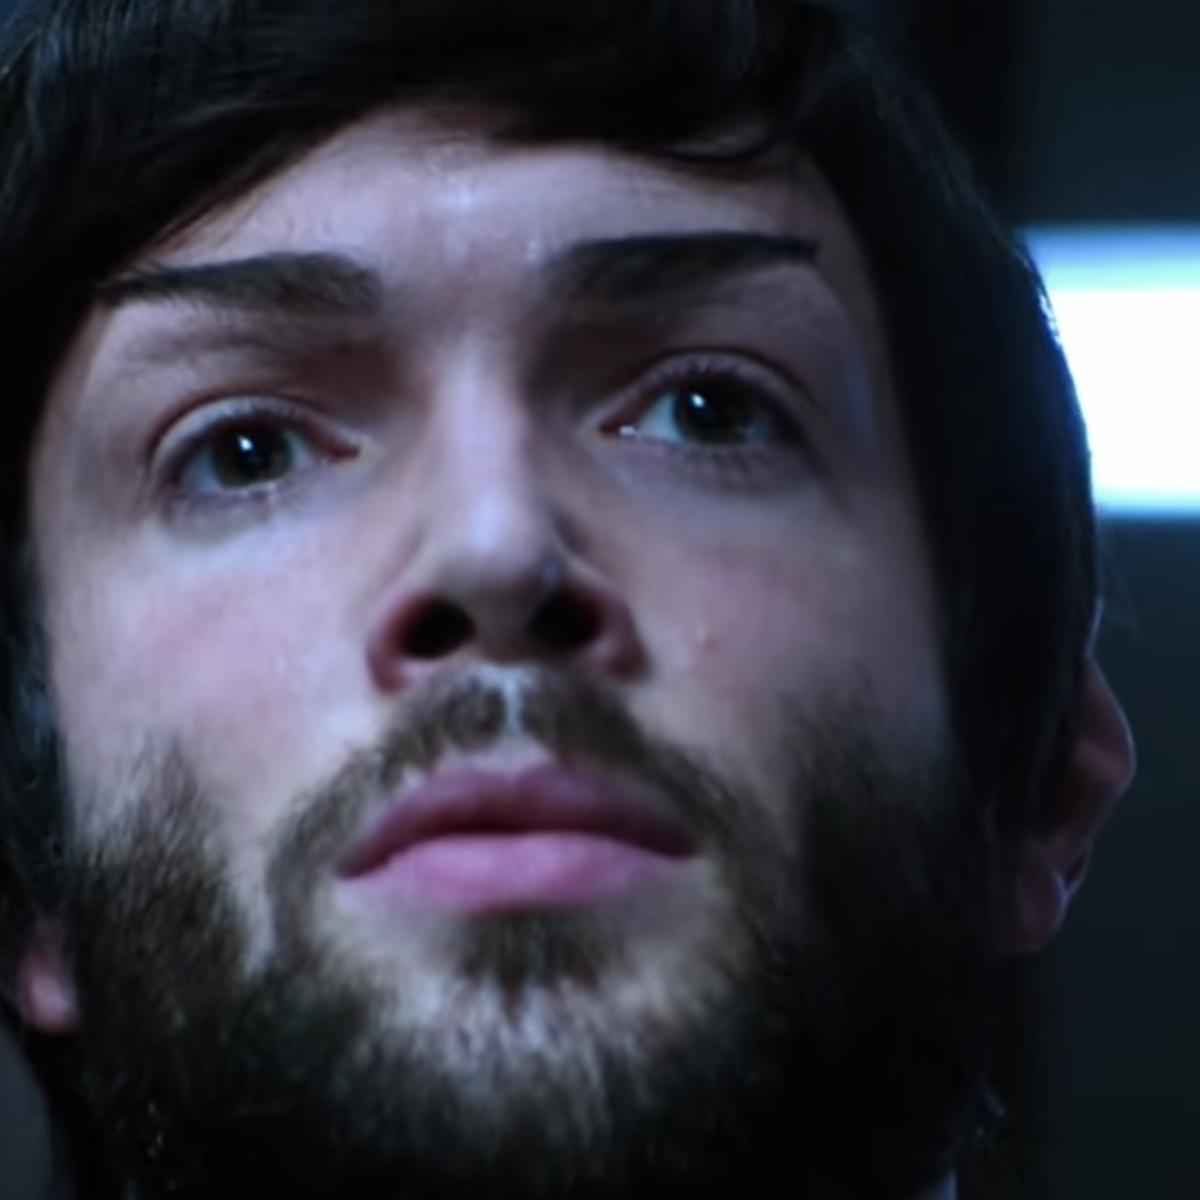 Star Trek: Discovery Season 2 Trailer, Ethan Peck as Spock